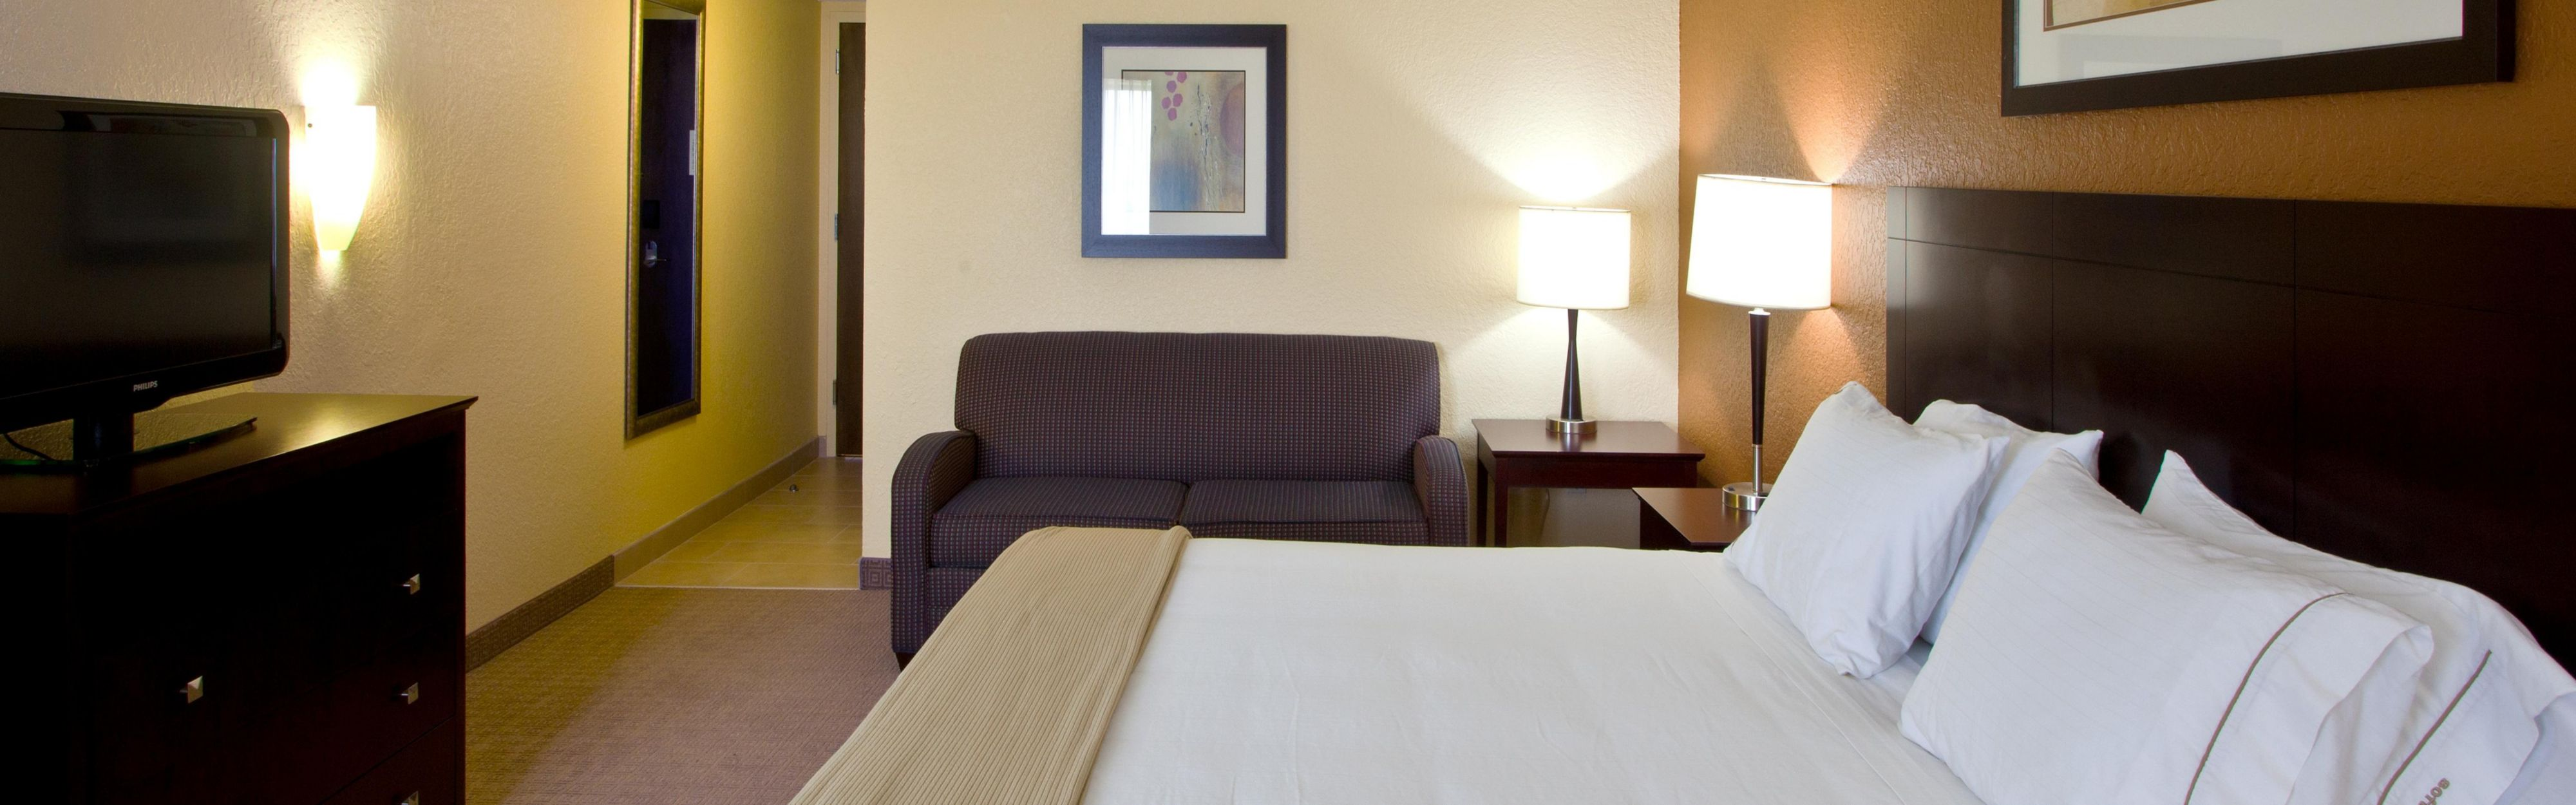 Holiday Inn Express & Suites Ft Lauderdale N - Exec Airport image 1